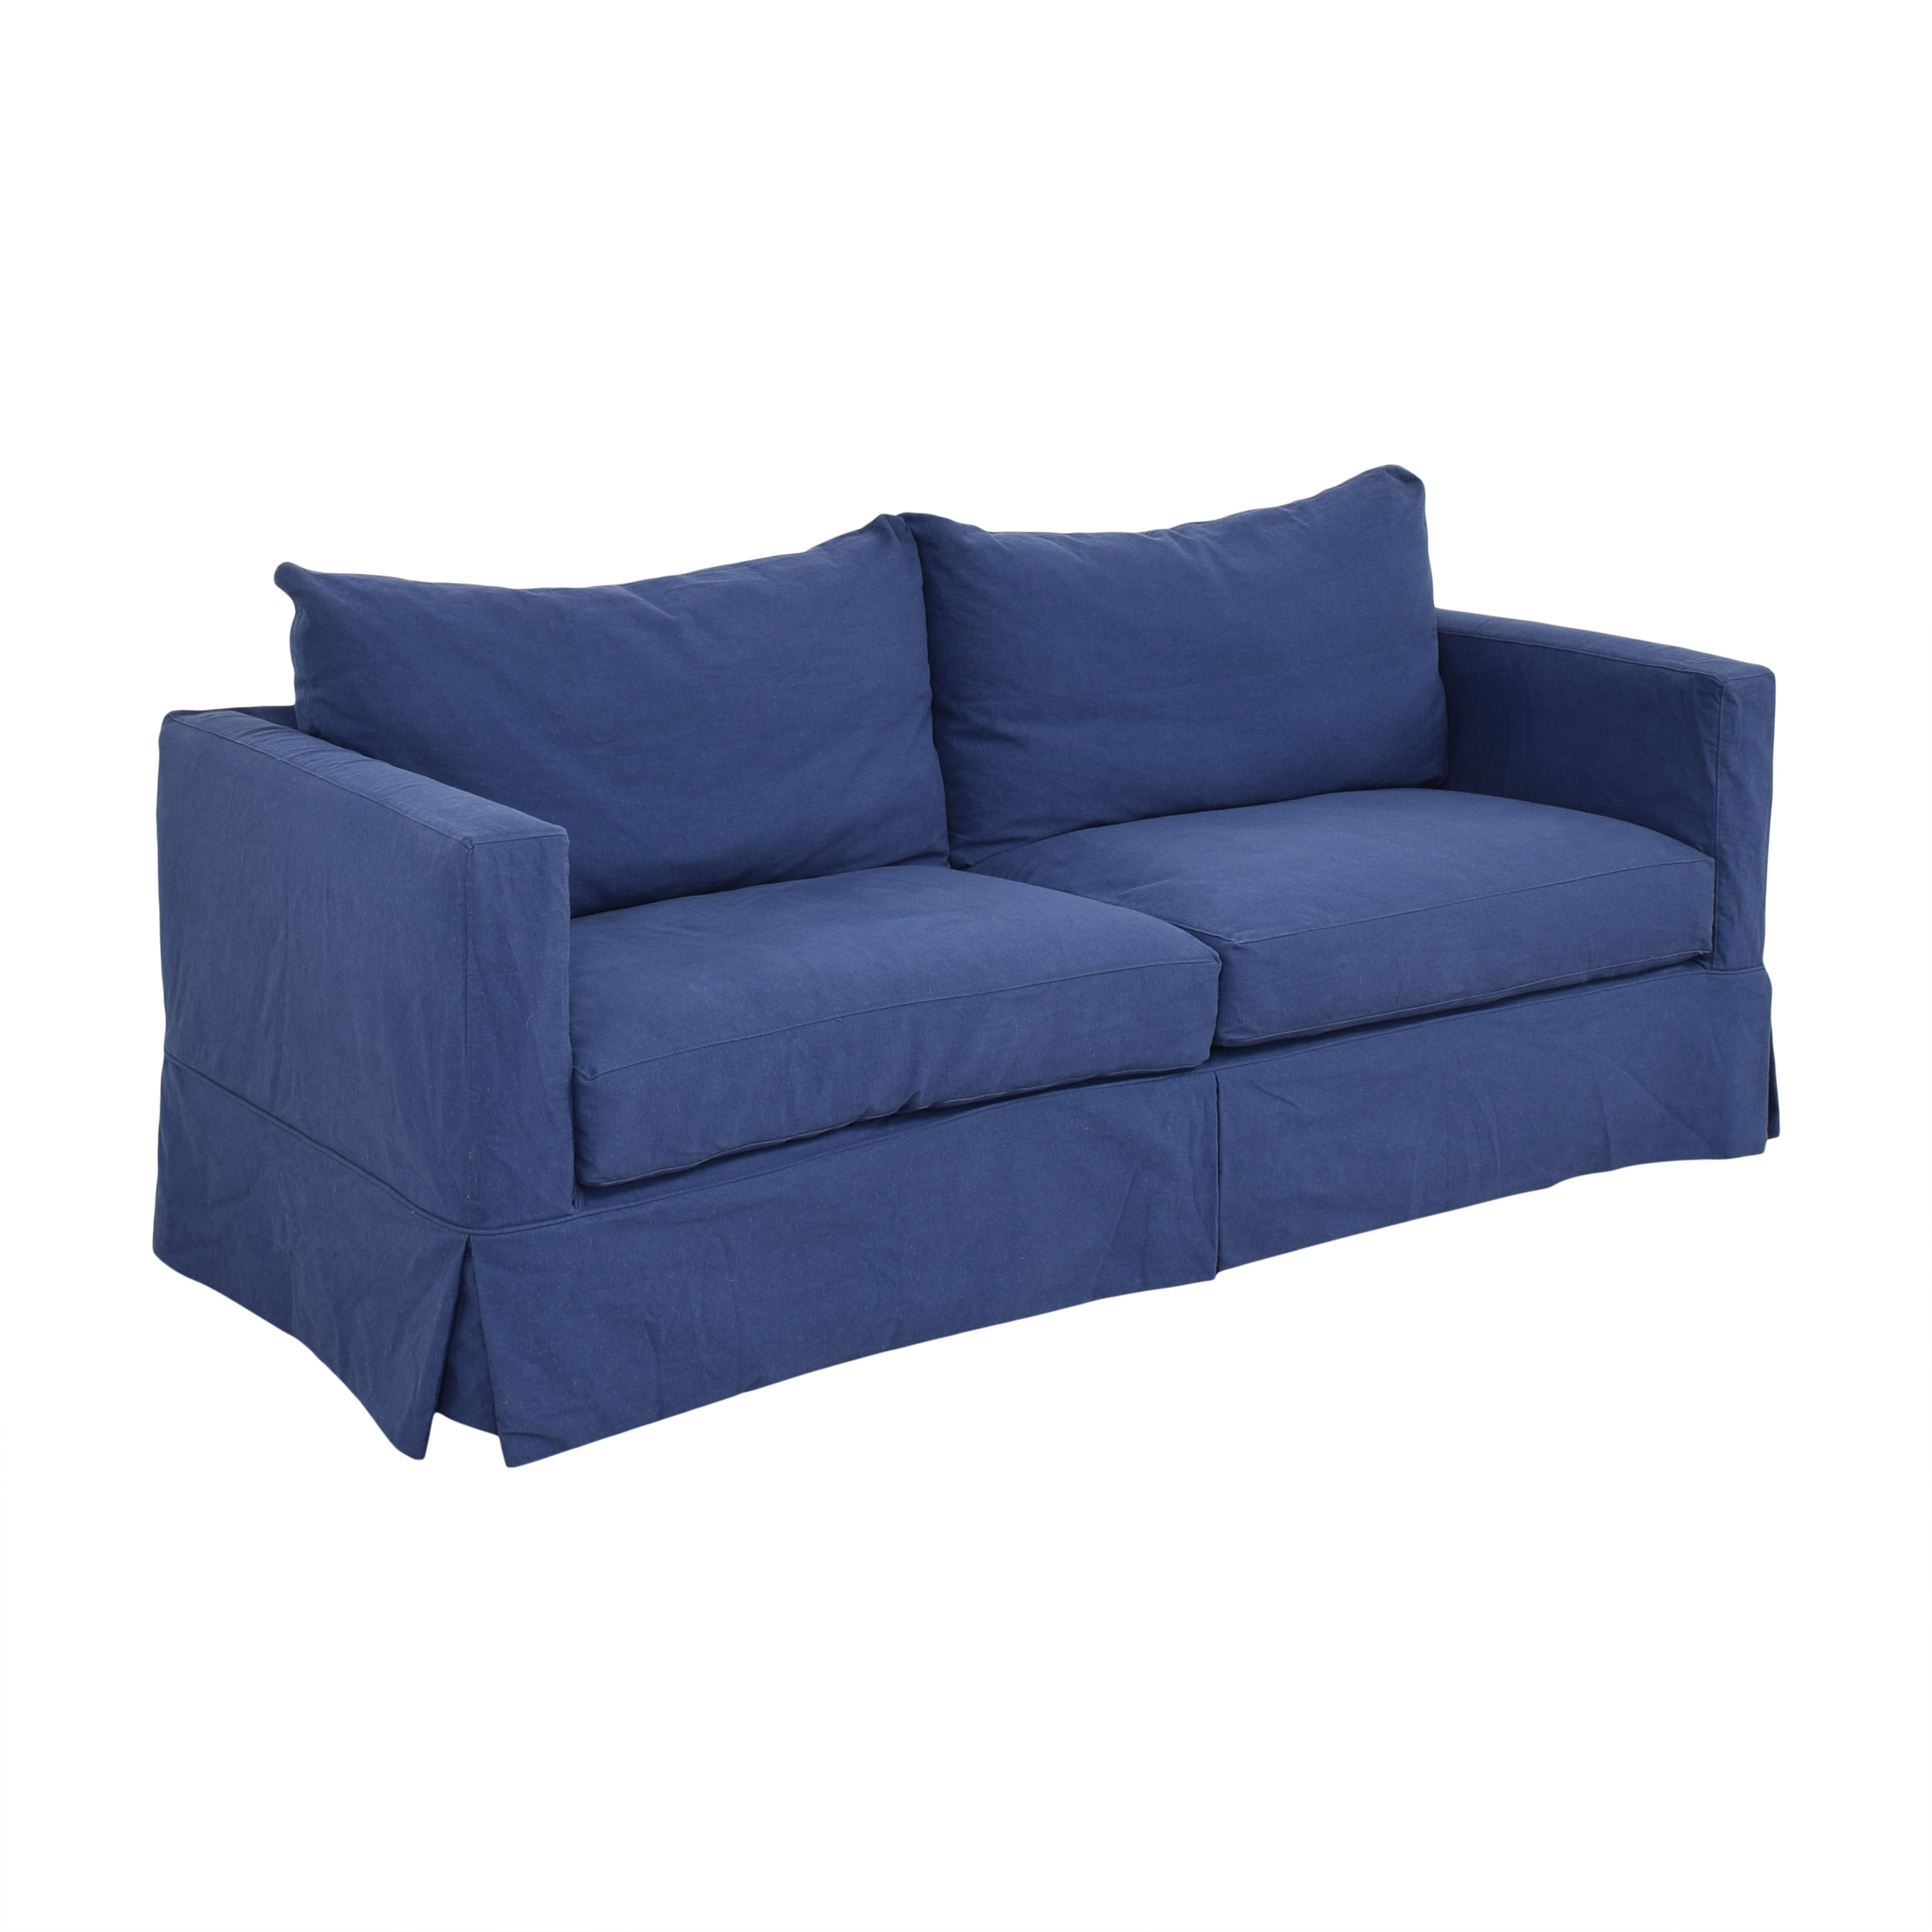 Crate & Barrel Crate & Barrel Willow Modern Slipcovered Sofa for sale